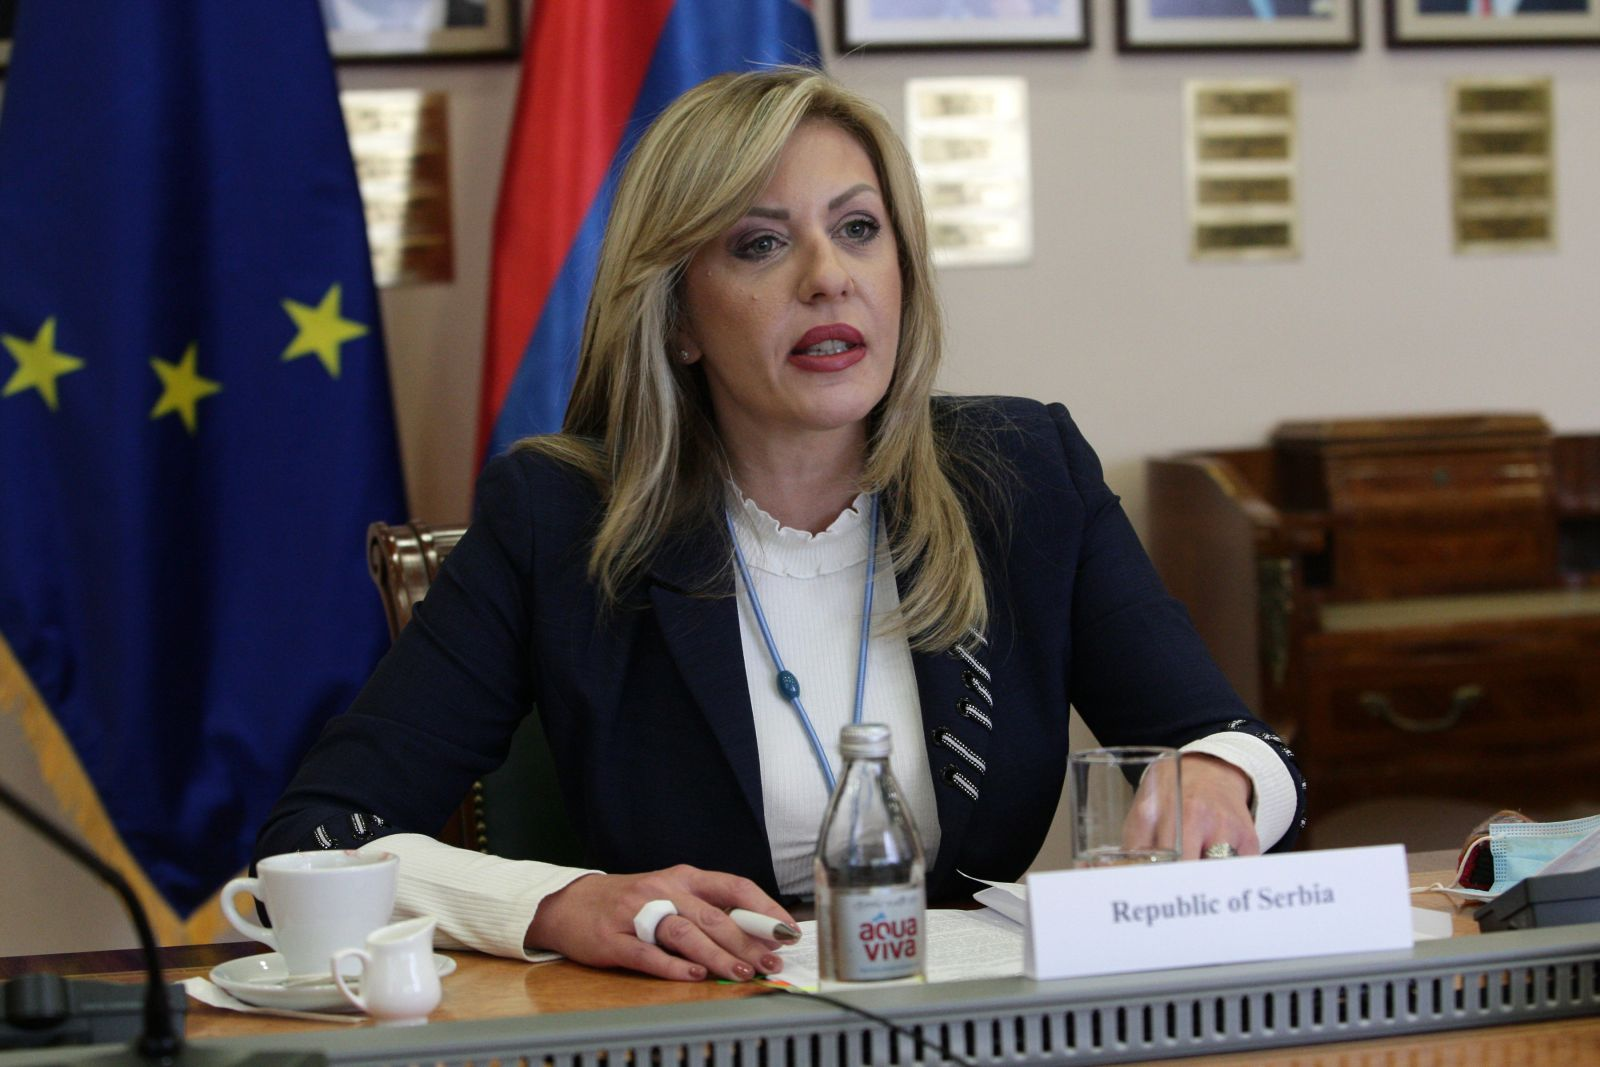 J. Joksimović: EUR 18 million from EU budget support for tackling COVID-19 effects